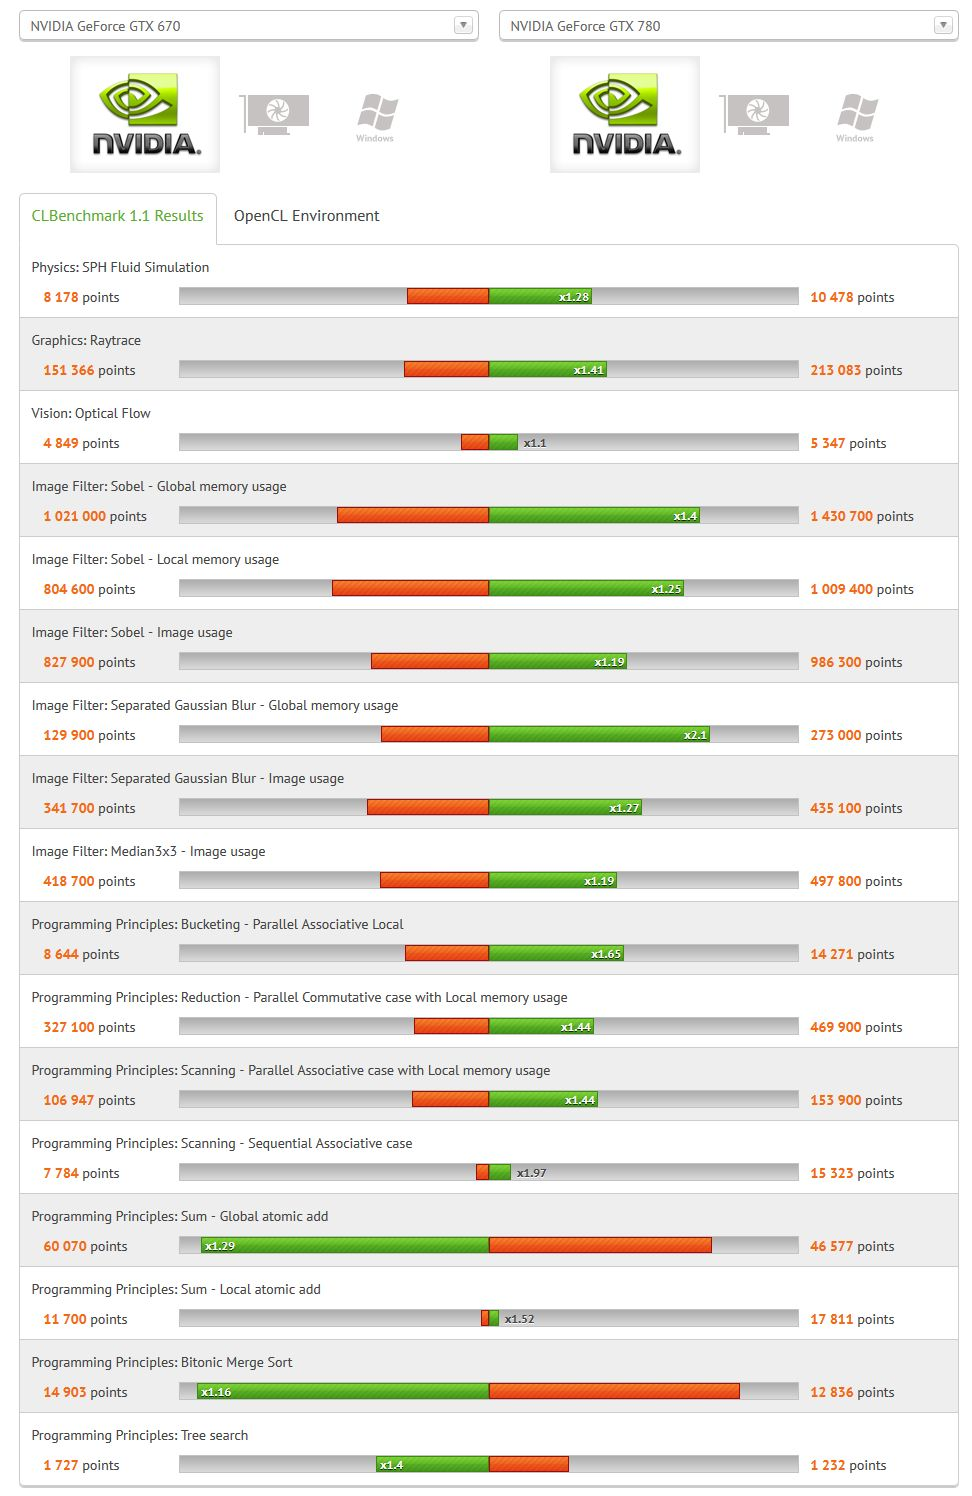 CLBenchmark GeForce GTX 670 vs GeForce GTX 780